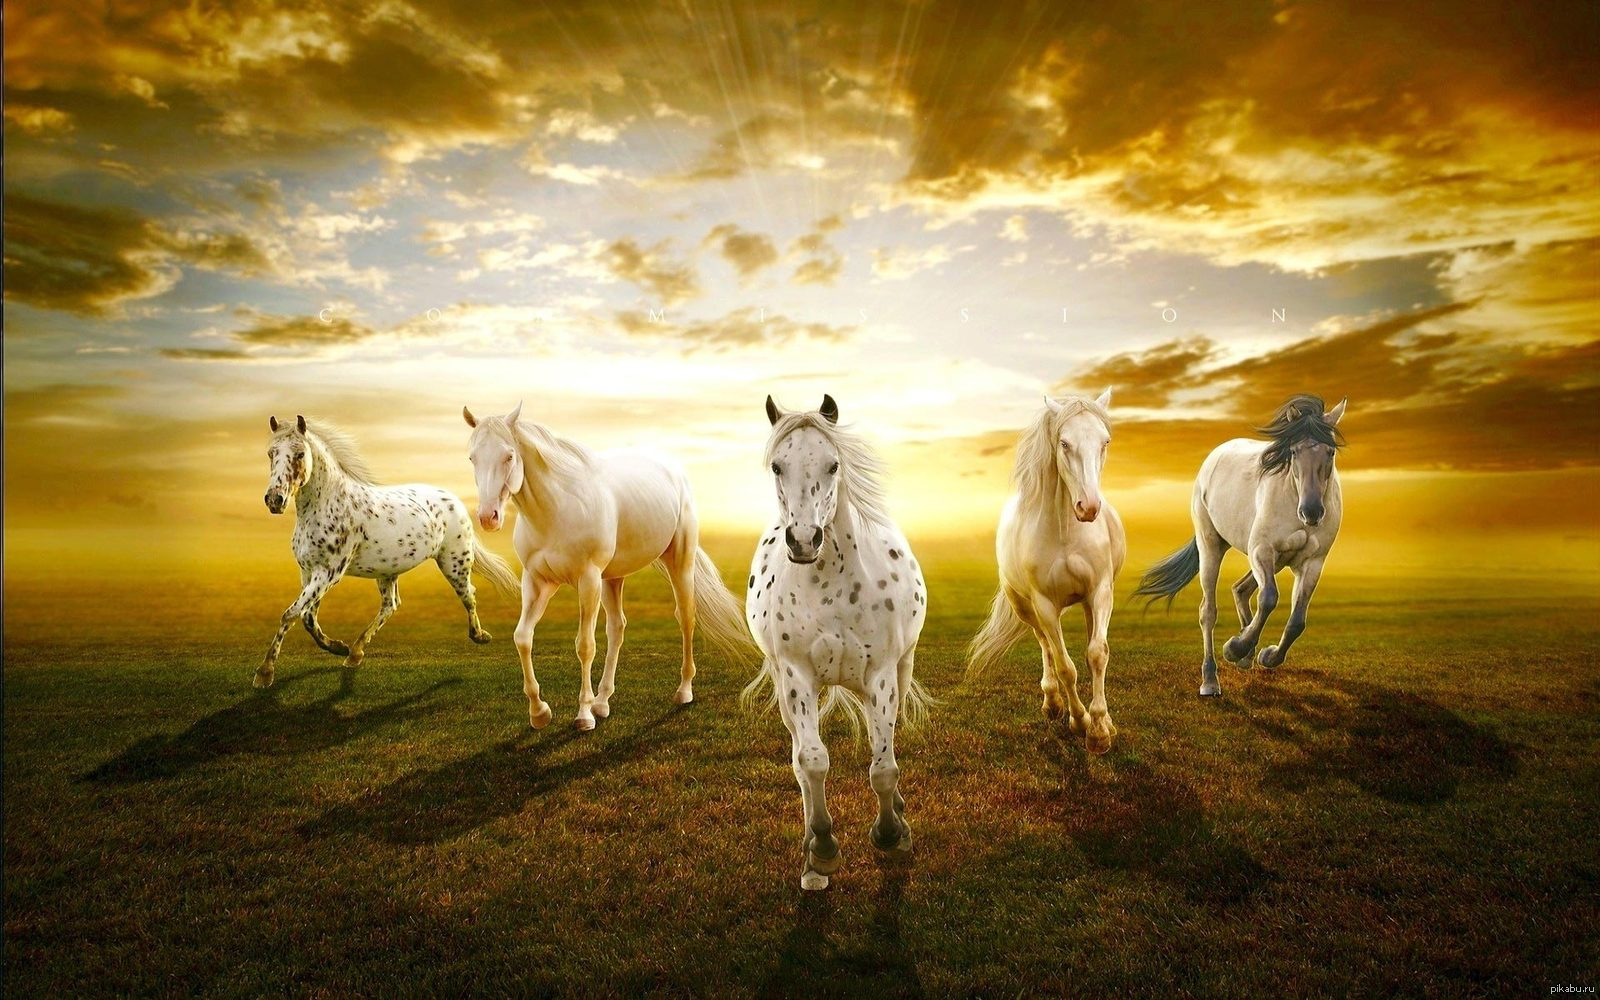 horses ins names released - HD1920×1080